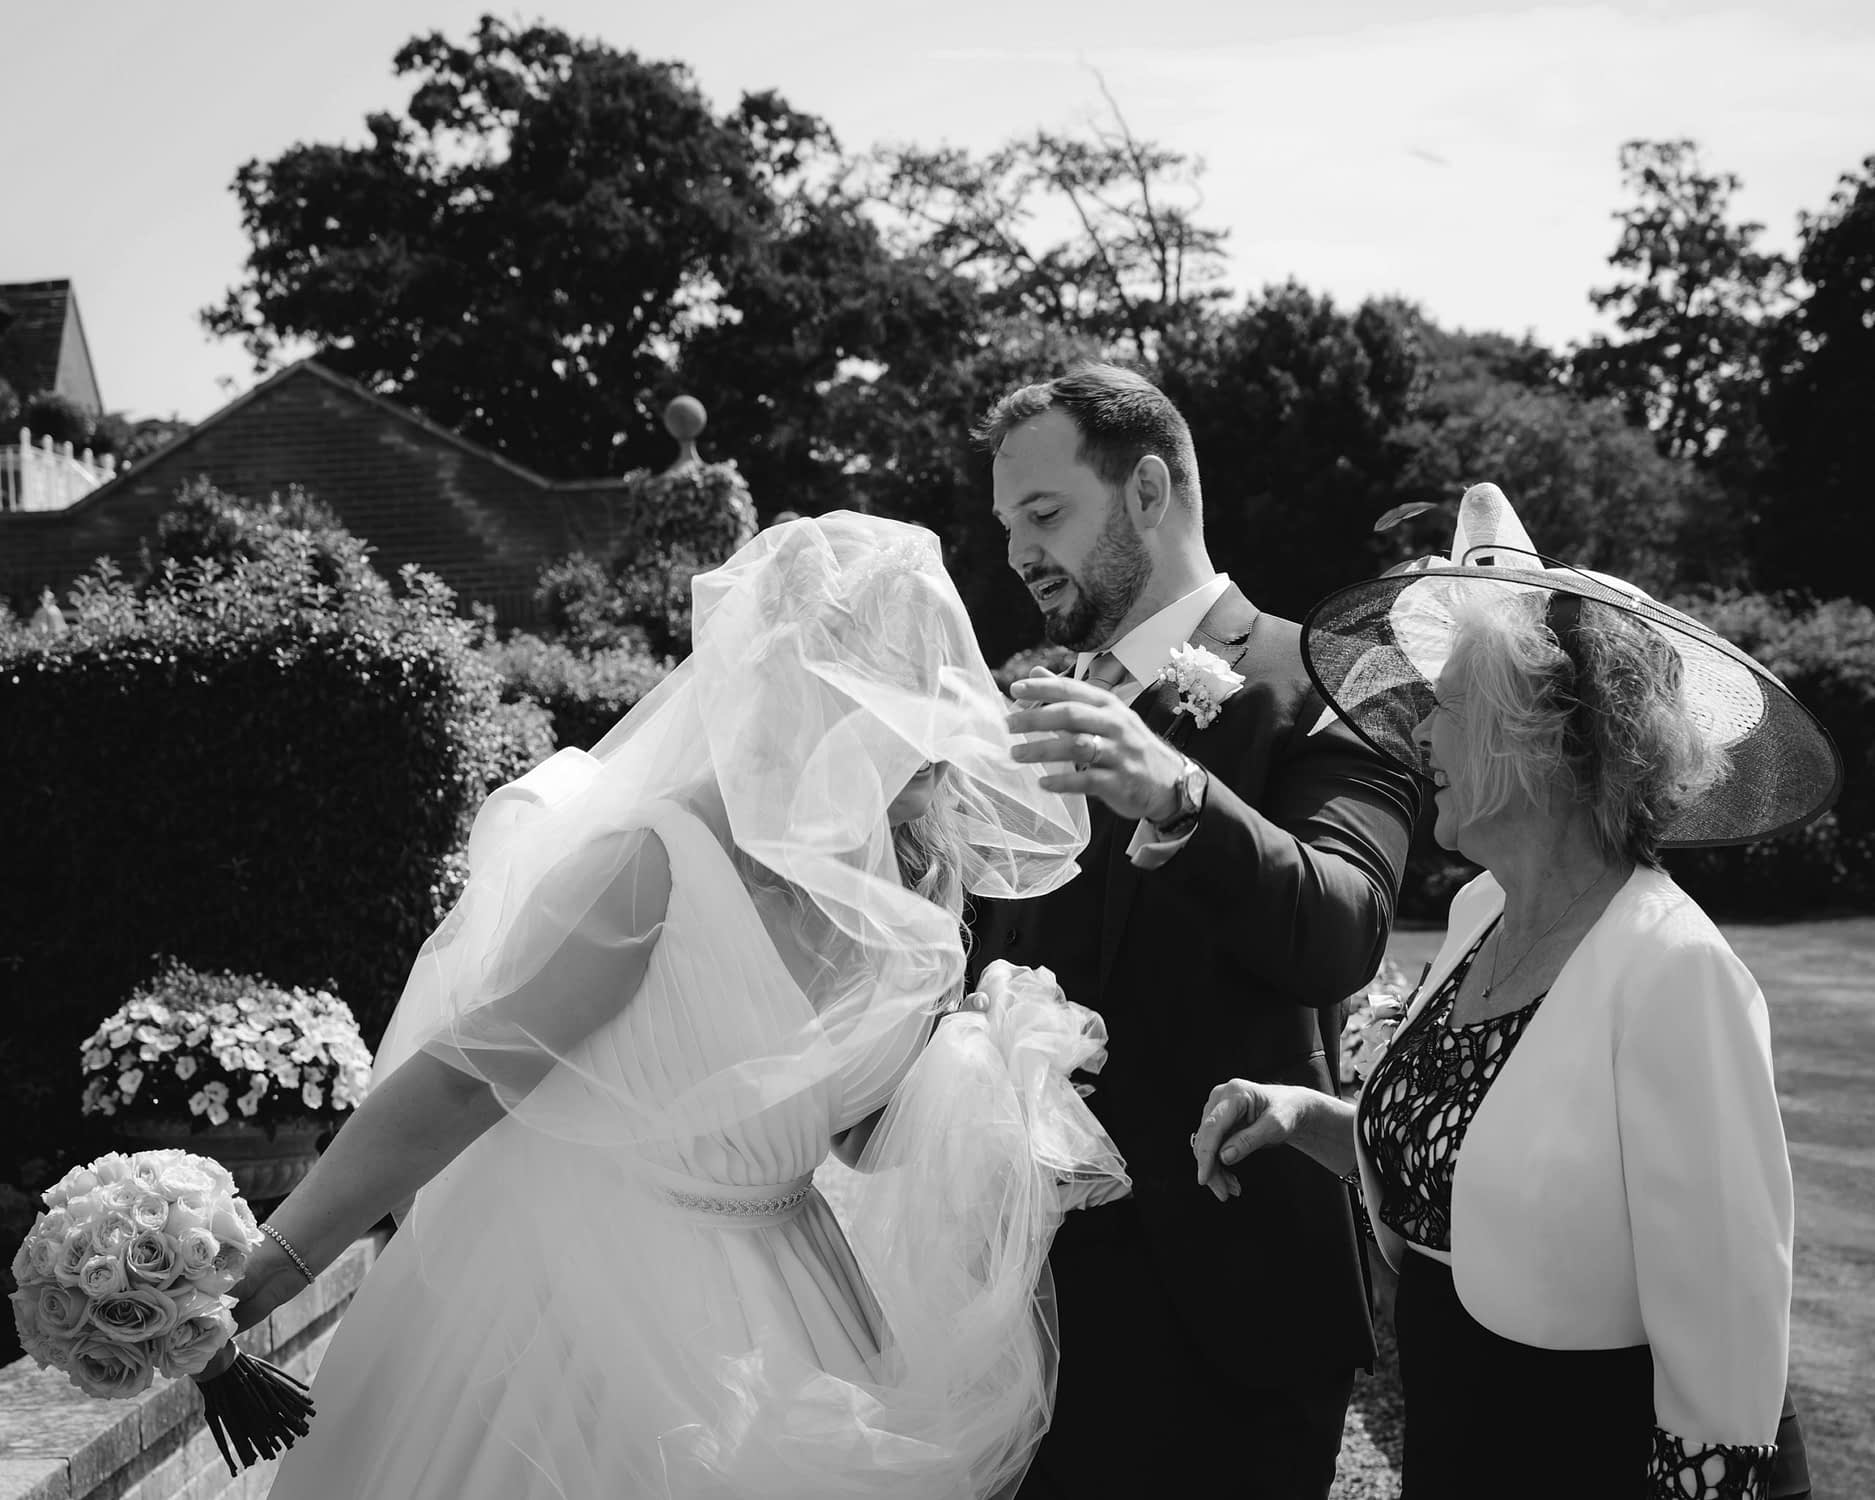 wind blows bride's veil over her face